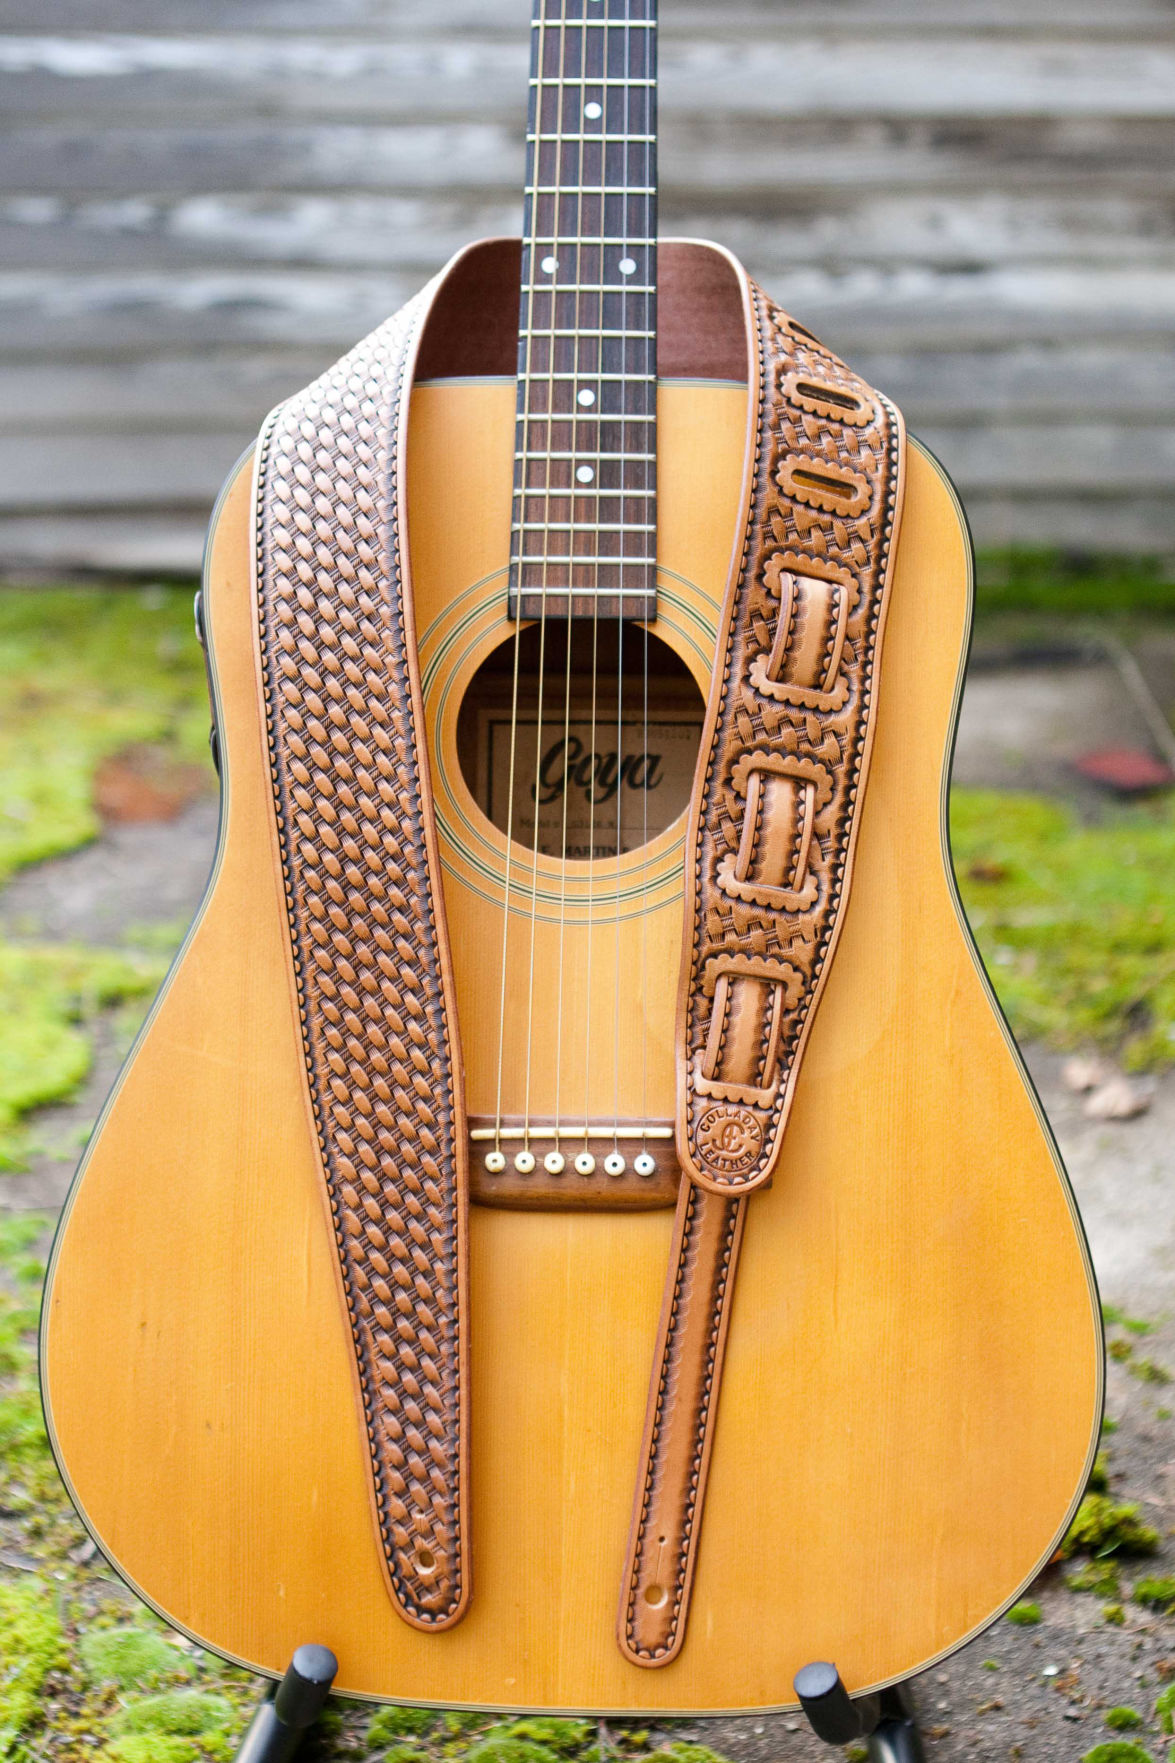 190228 WENAHA Colladay Leather Basket Stamp Guitar Strap by Jeremiah Colladay:photo by ERIN COLLADAY.jpg